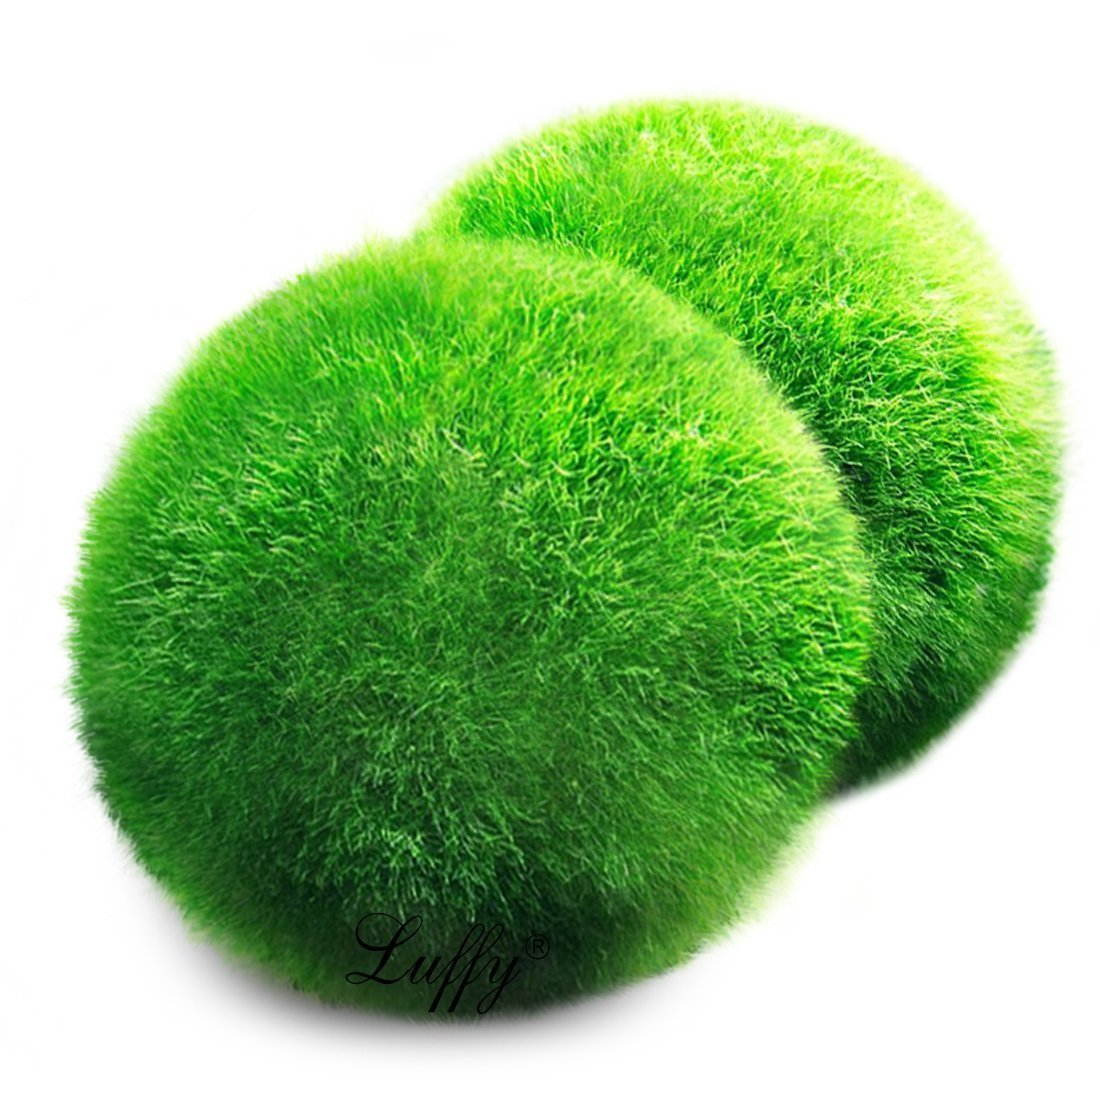 Luffy Marimo Moss Balls - Beautiful and Natural Aquarium Decor - Absorb Harmful Chemical in Water - Perfect Heirloom Gift - Symbolize Eternal Love